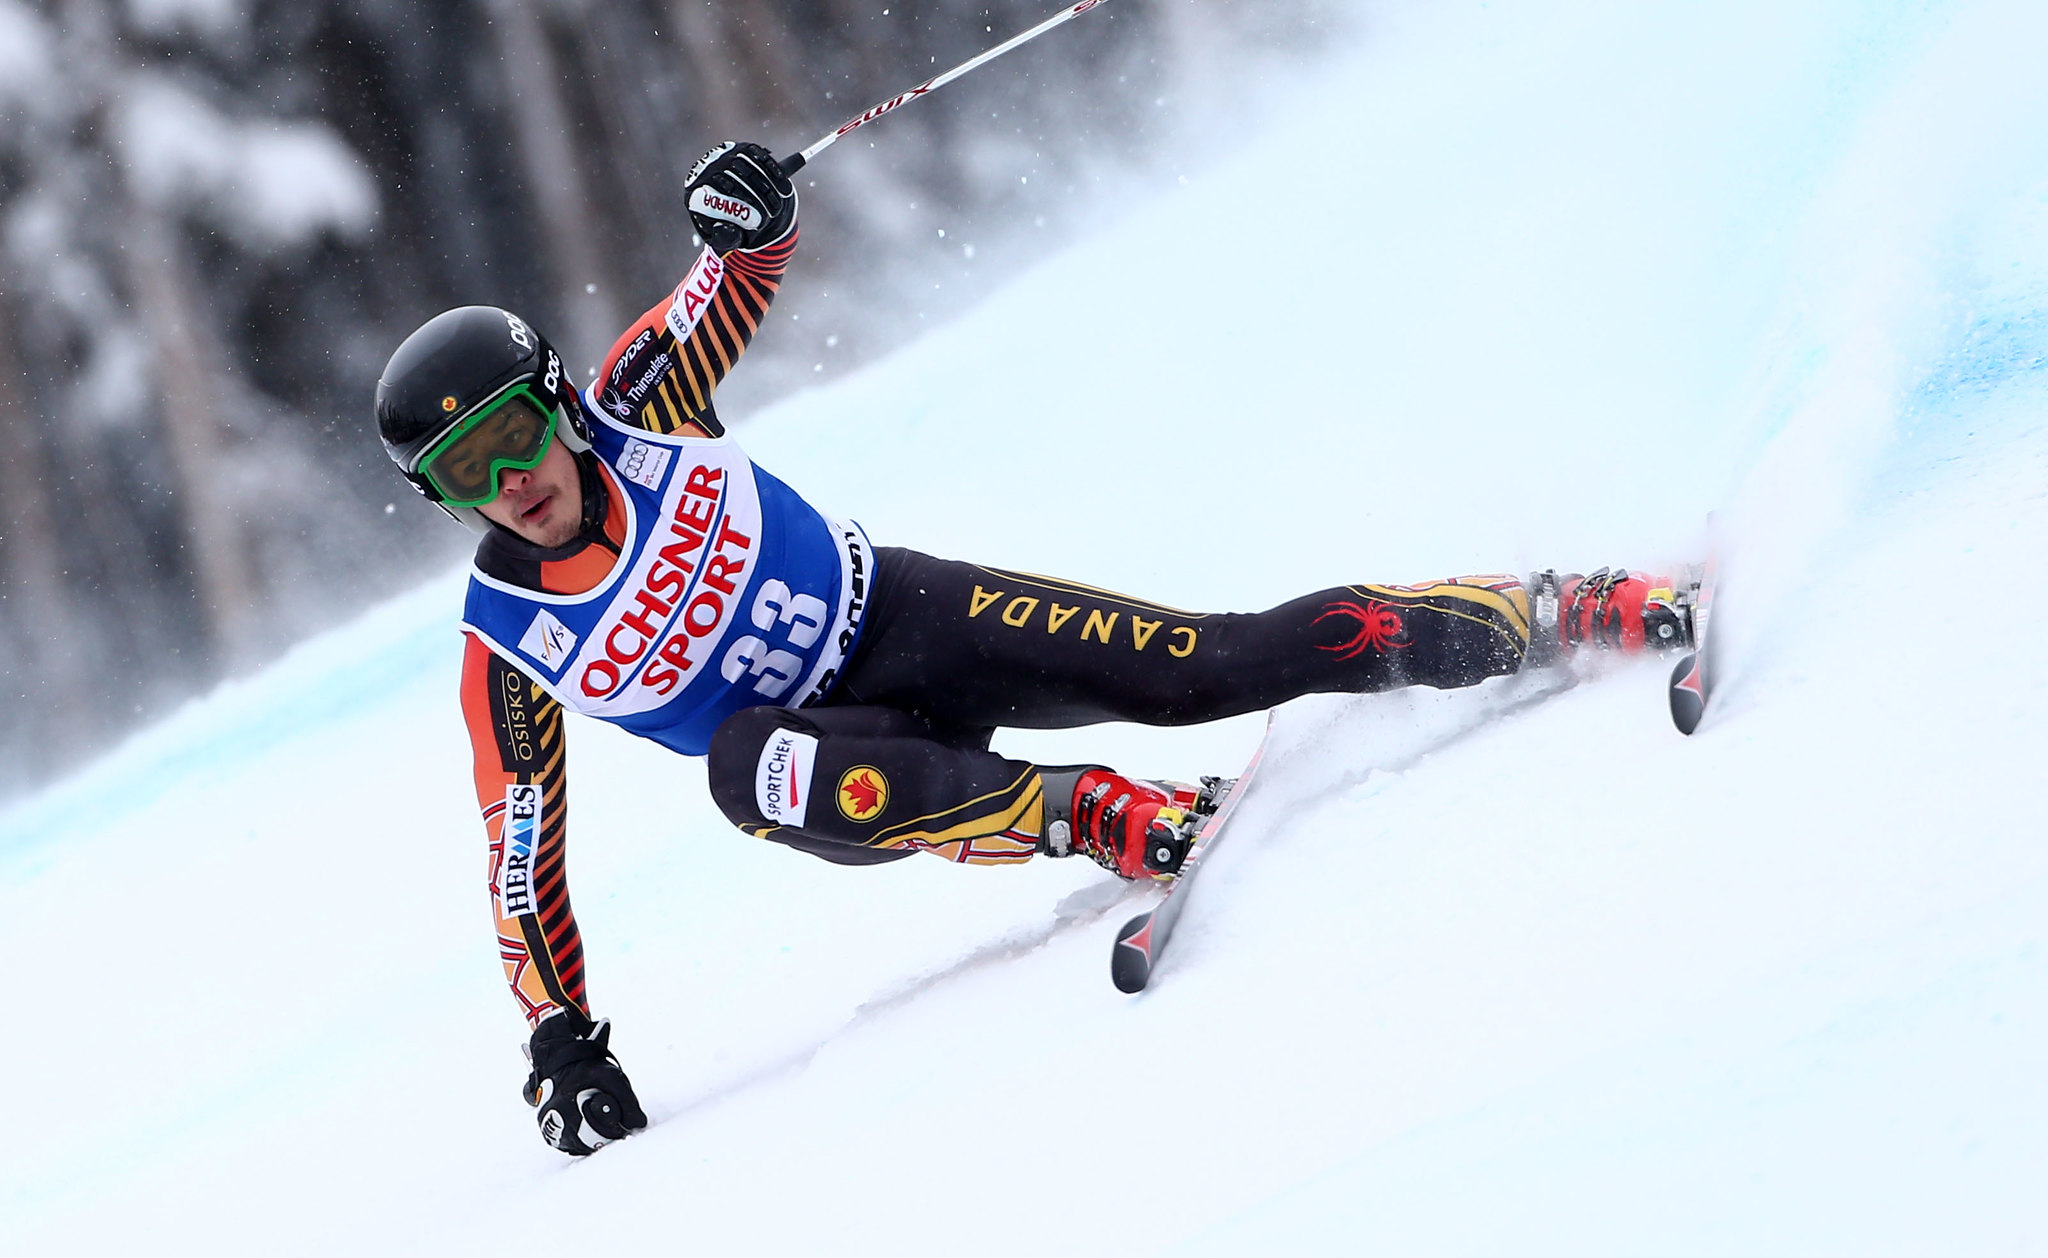 Morgan Pridy charges down the hill during the super-G at the FIS Alpine World Cup in Beaver Creek, USA